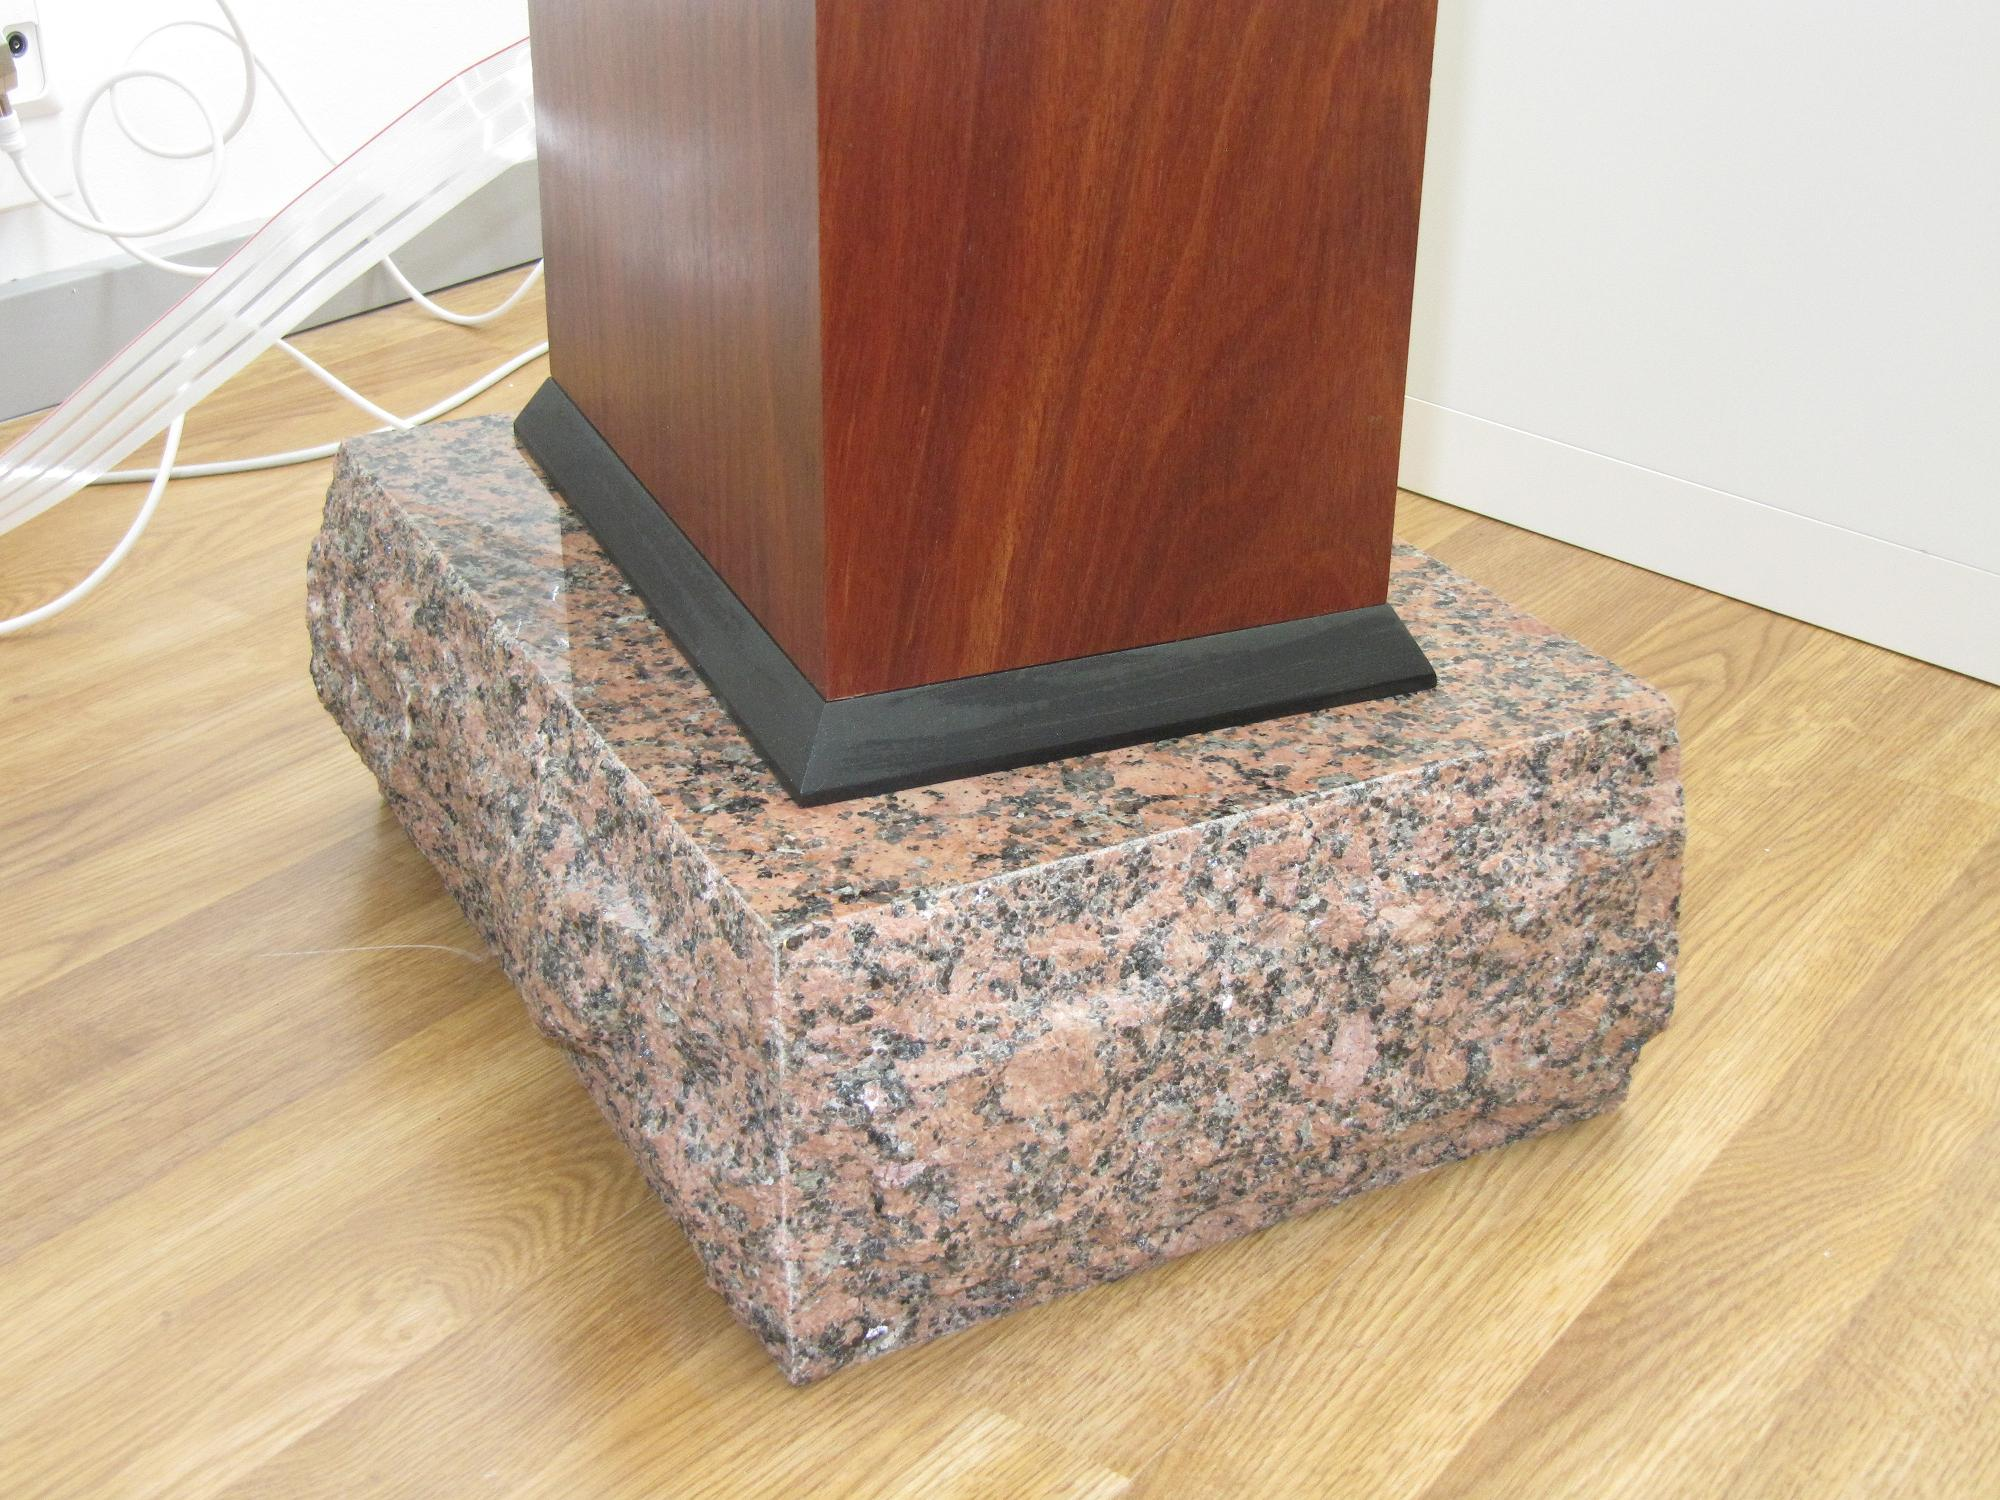 duntechgranite.jpg